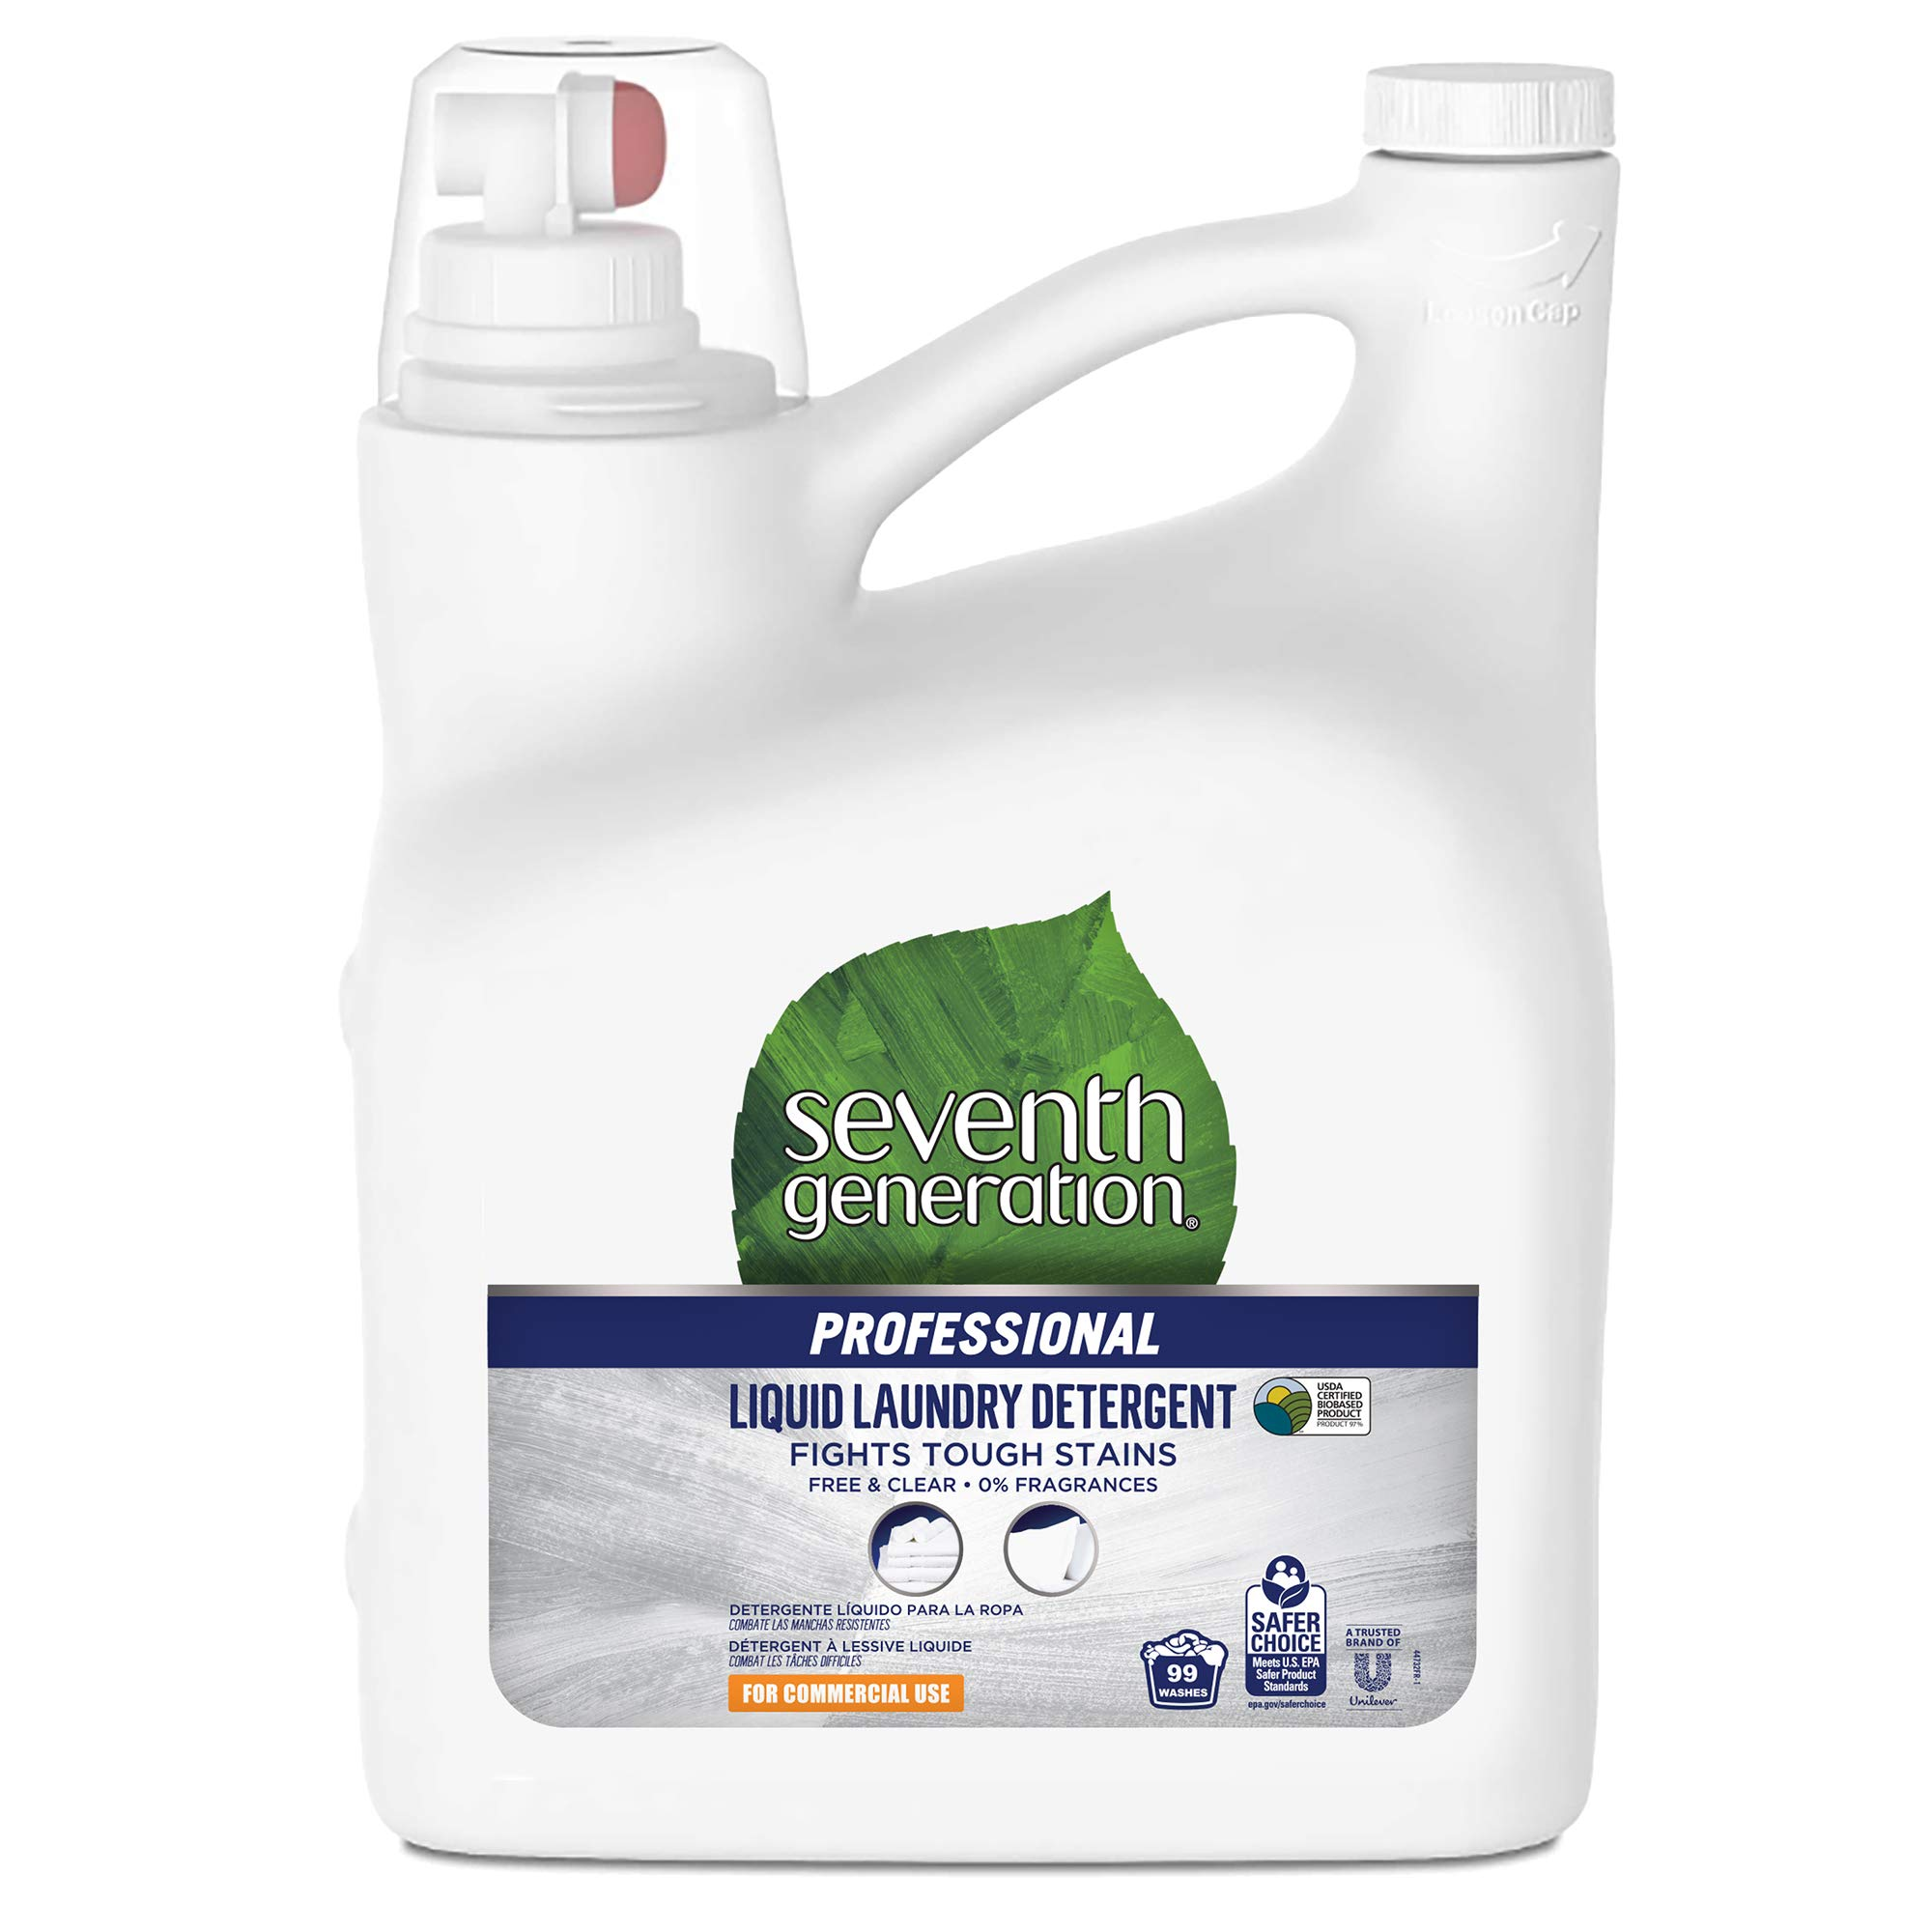 Seventh Generation Professional Liquid Laundry Detergent, Unscented, 150 Fluid Ounce (Pack of 4)